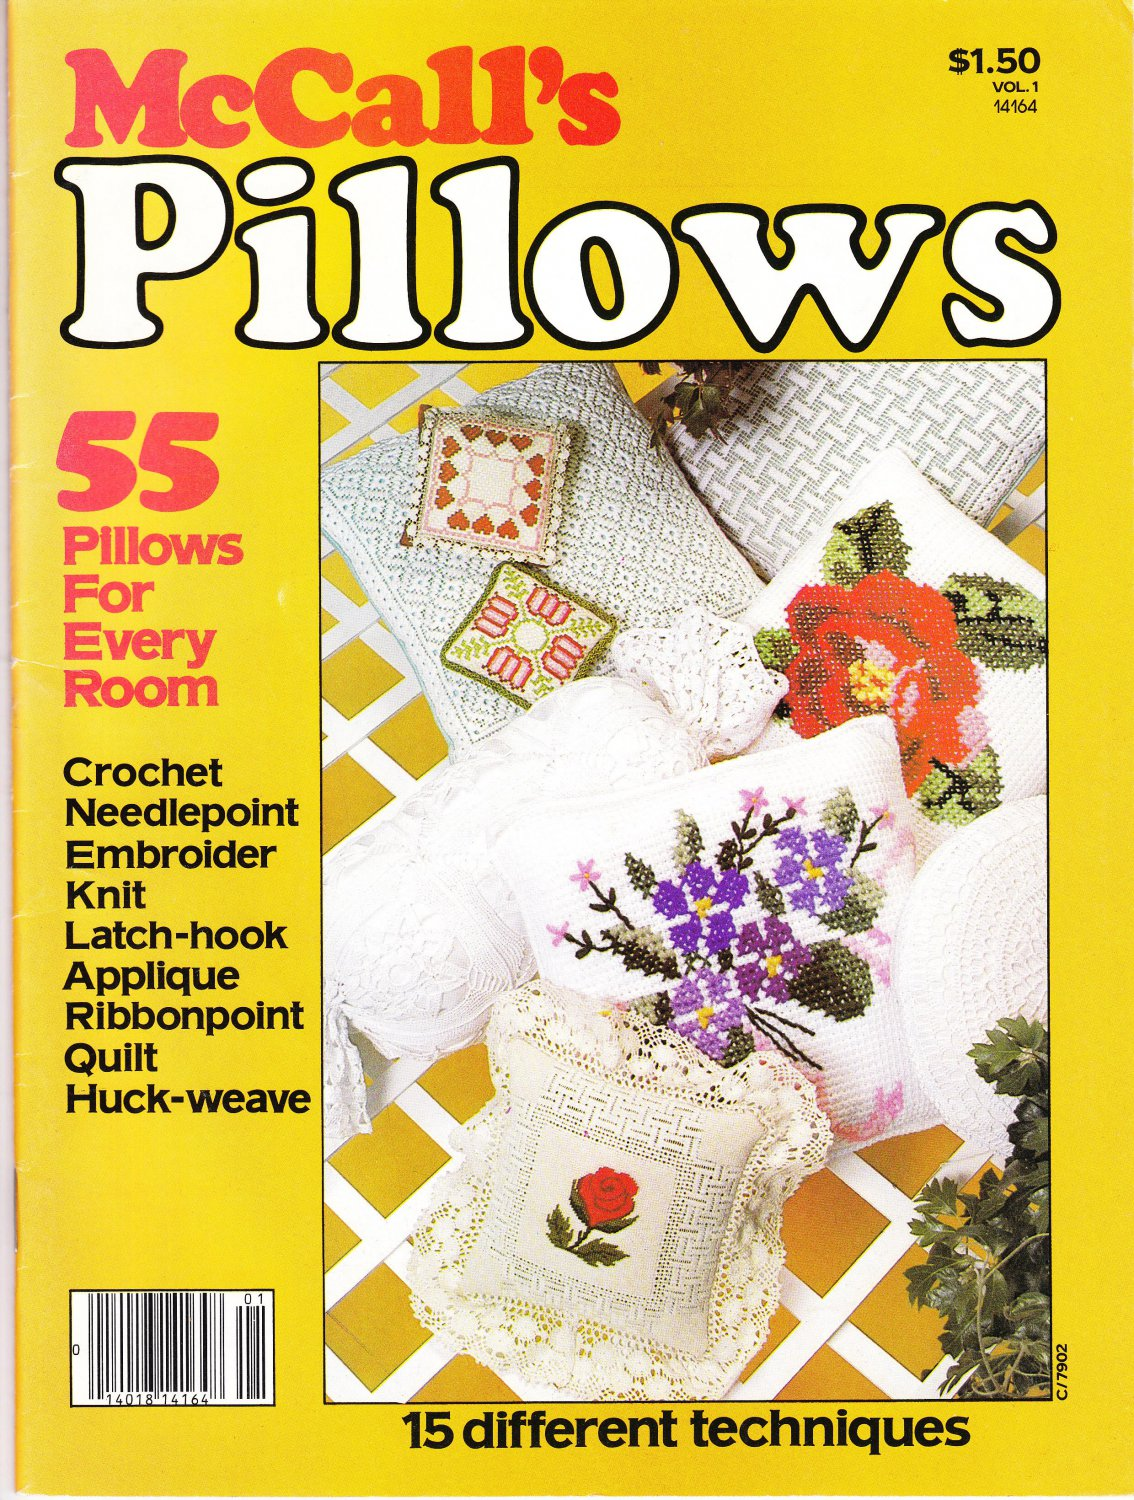 McCall's 1979 Magazine Pillows Vol.1- 55 Pillow Designs -15 Different Techniques